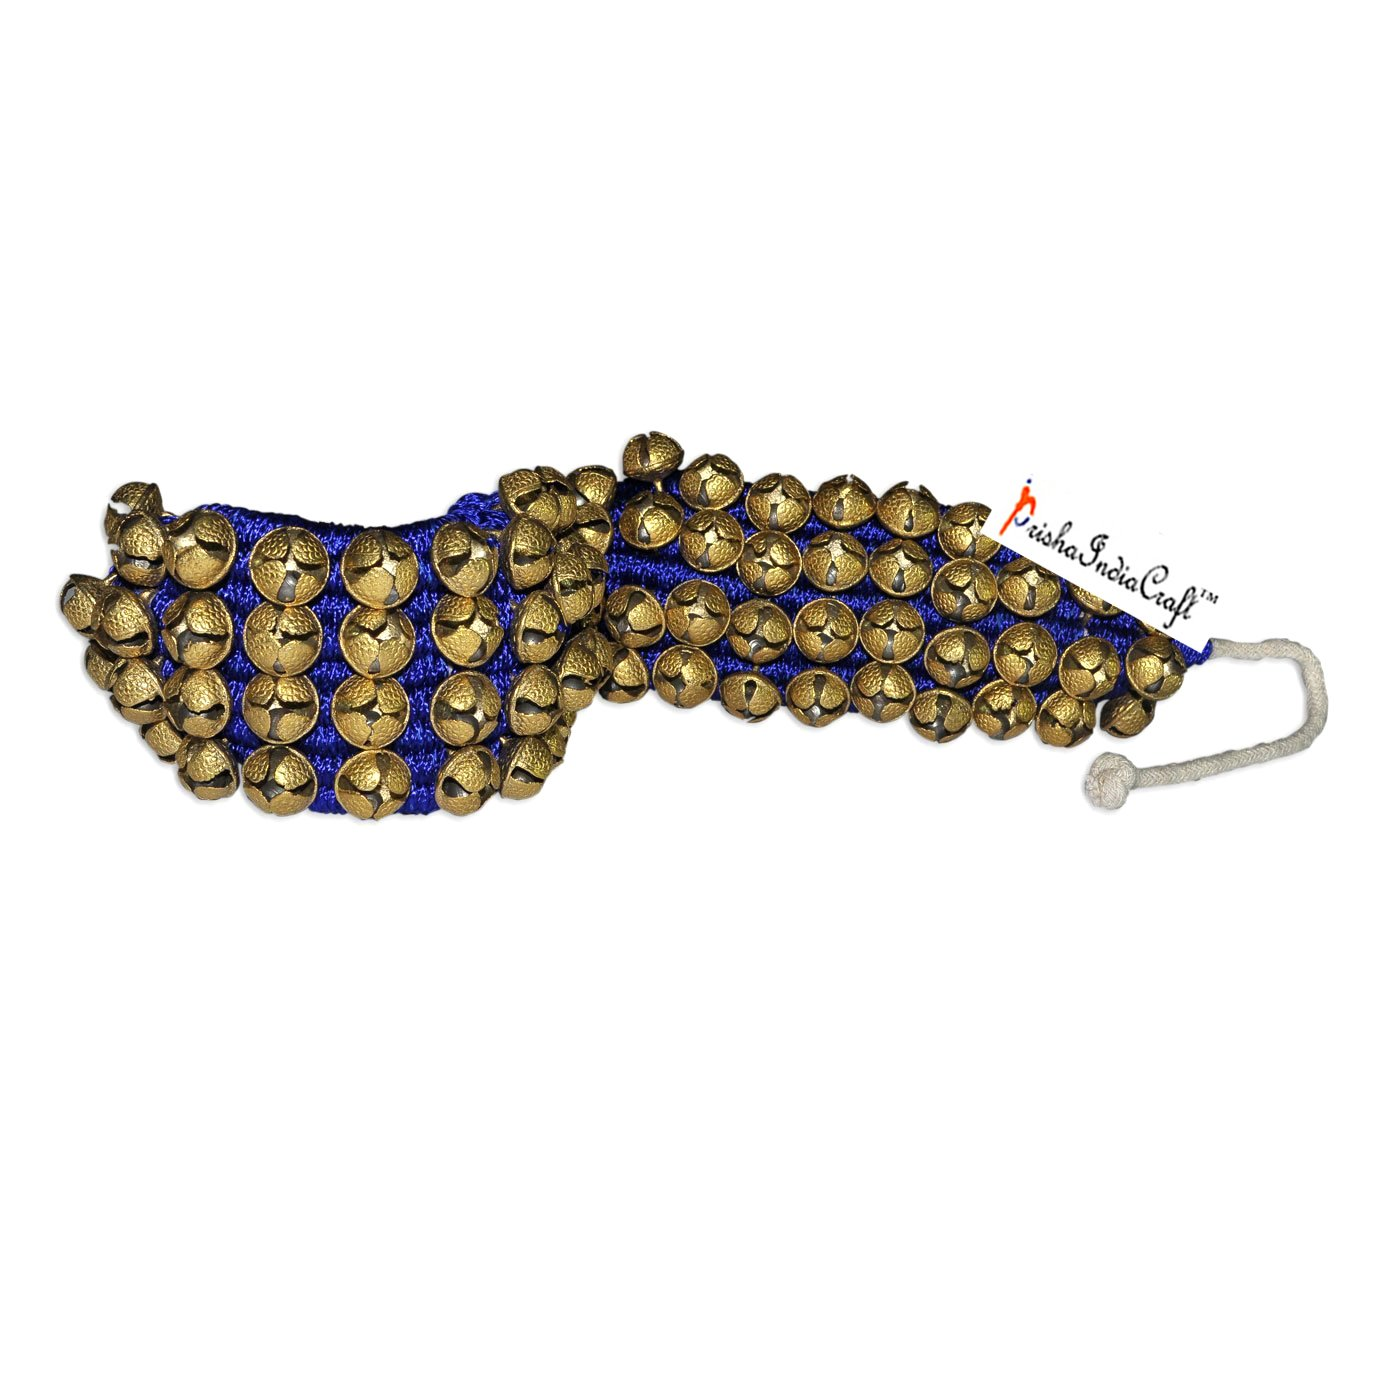 Prisha India Craft ® Kathak Four Line Big Bells (16 No. Ghungroo) Best quality Good Quality Ghungroo Blue Pad Indian Classical Dancers Anklet Musical Instrument